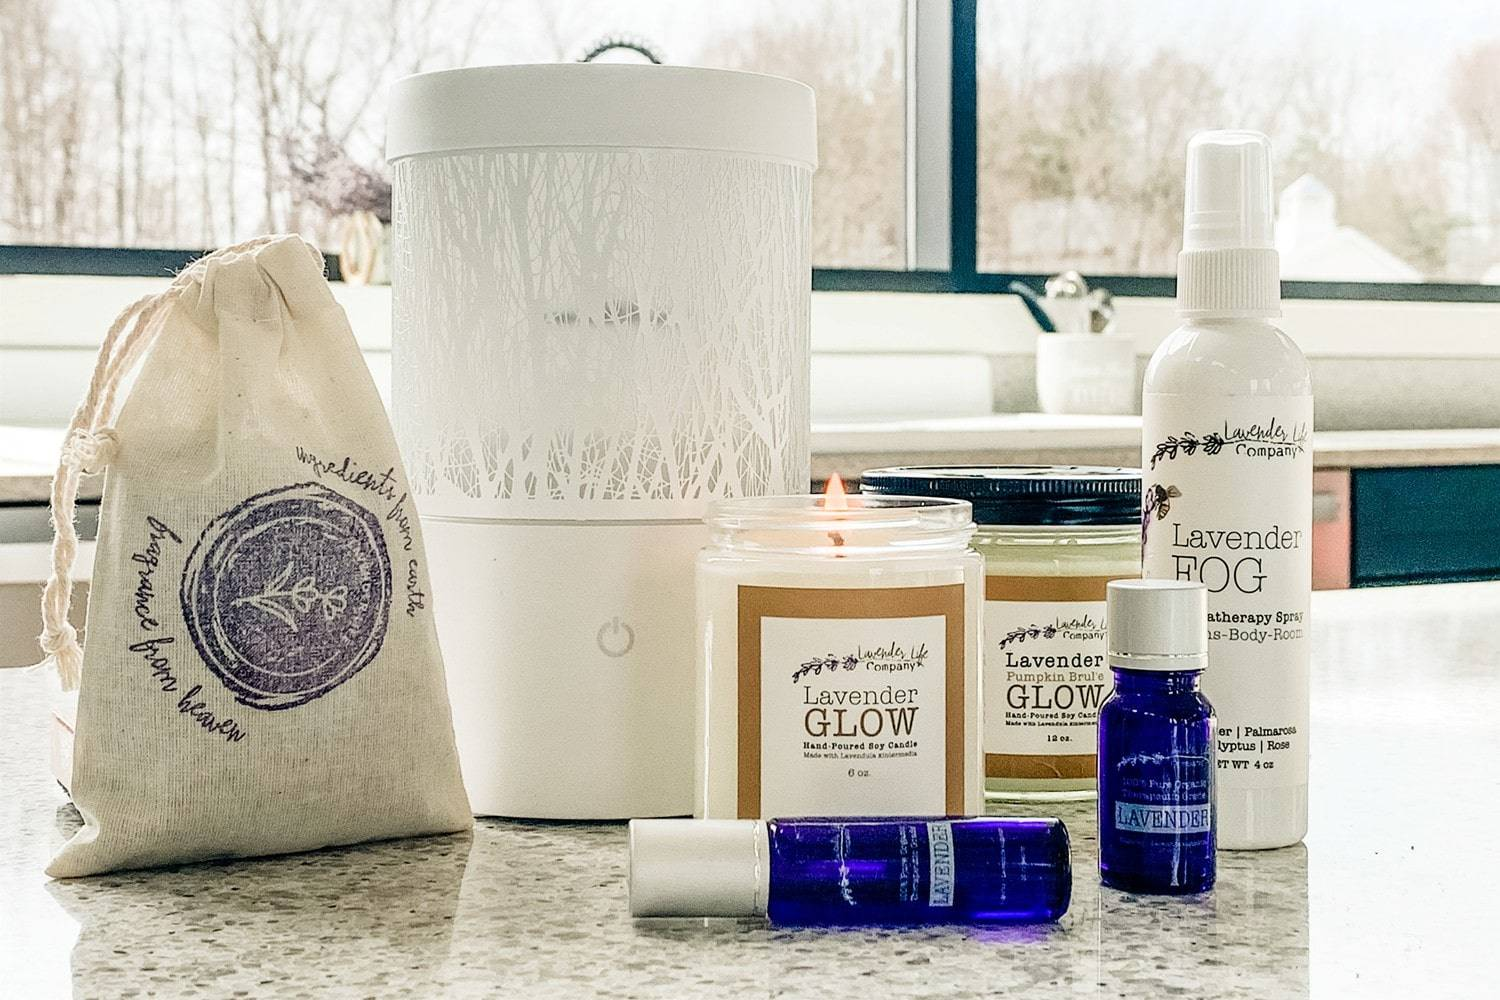 Lavender Aromatherapy Oils, Candles, Mist and More - Lavender-Life.com